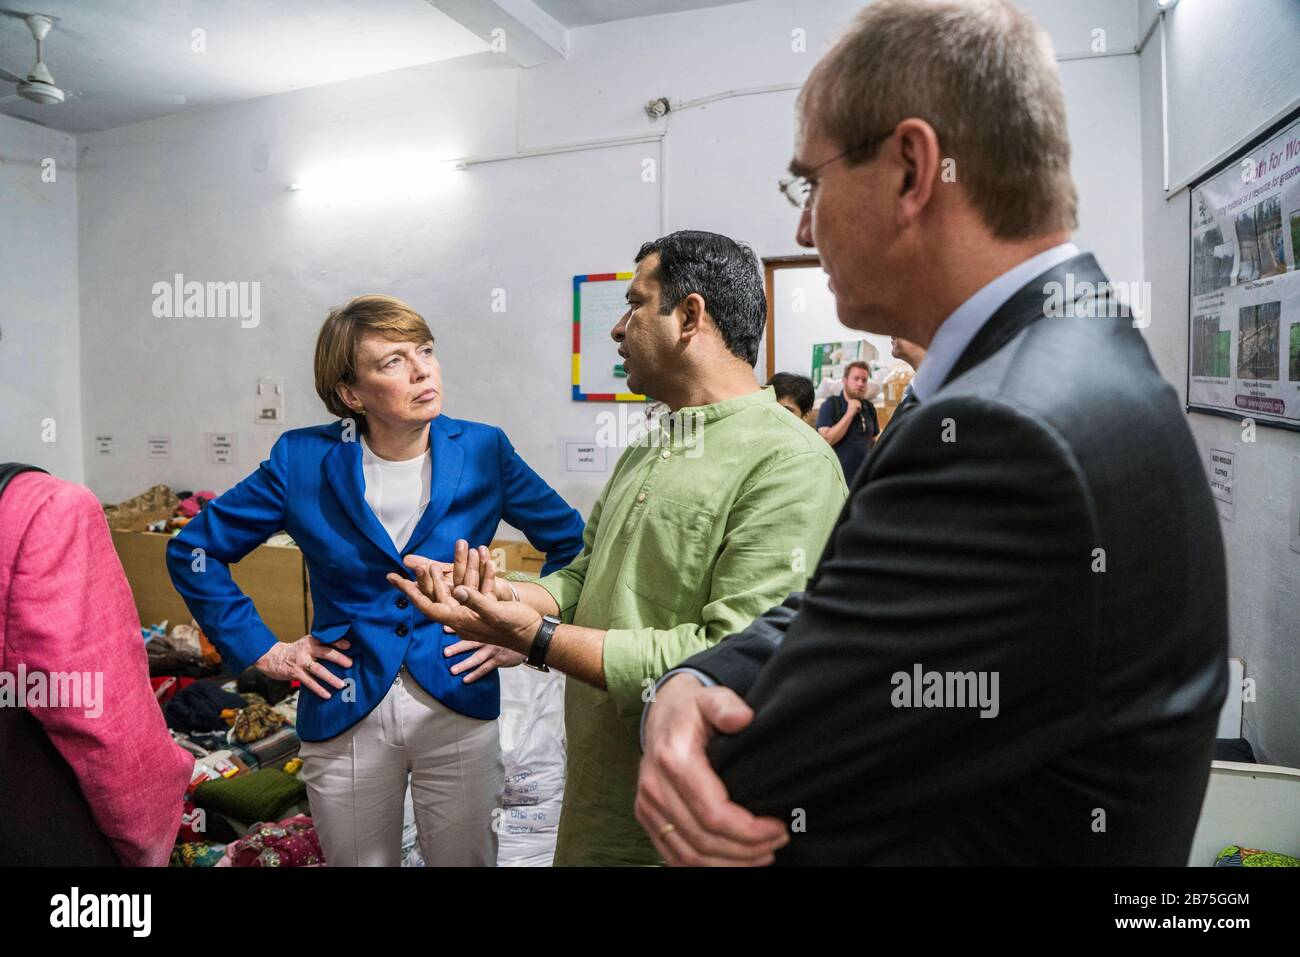 India, New Delhi, 24.03.2018. Visit of the German President and Mrs. Buedenbender to the Republic of India from 21-26.03.2018. Mrs. Buedenbender visits the organisation Goonjin New Delhi on 24.03.2018. From left to right: Elke Bedenbender, lawyer and wife of the German President, Anshu Gupta, founder of the organisation Goonj and Christian Schneider, Managing Director of Unicef Germany. [automated translation] Stock Photo